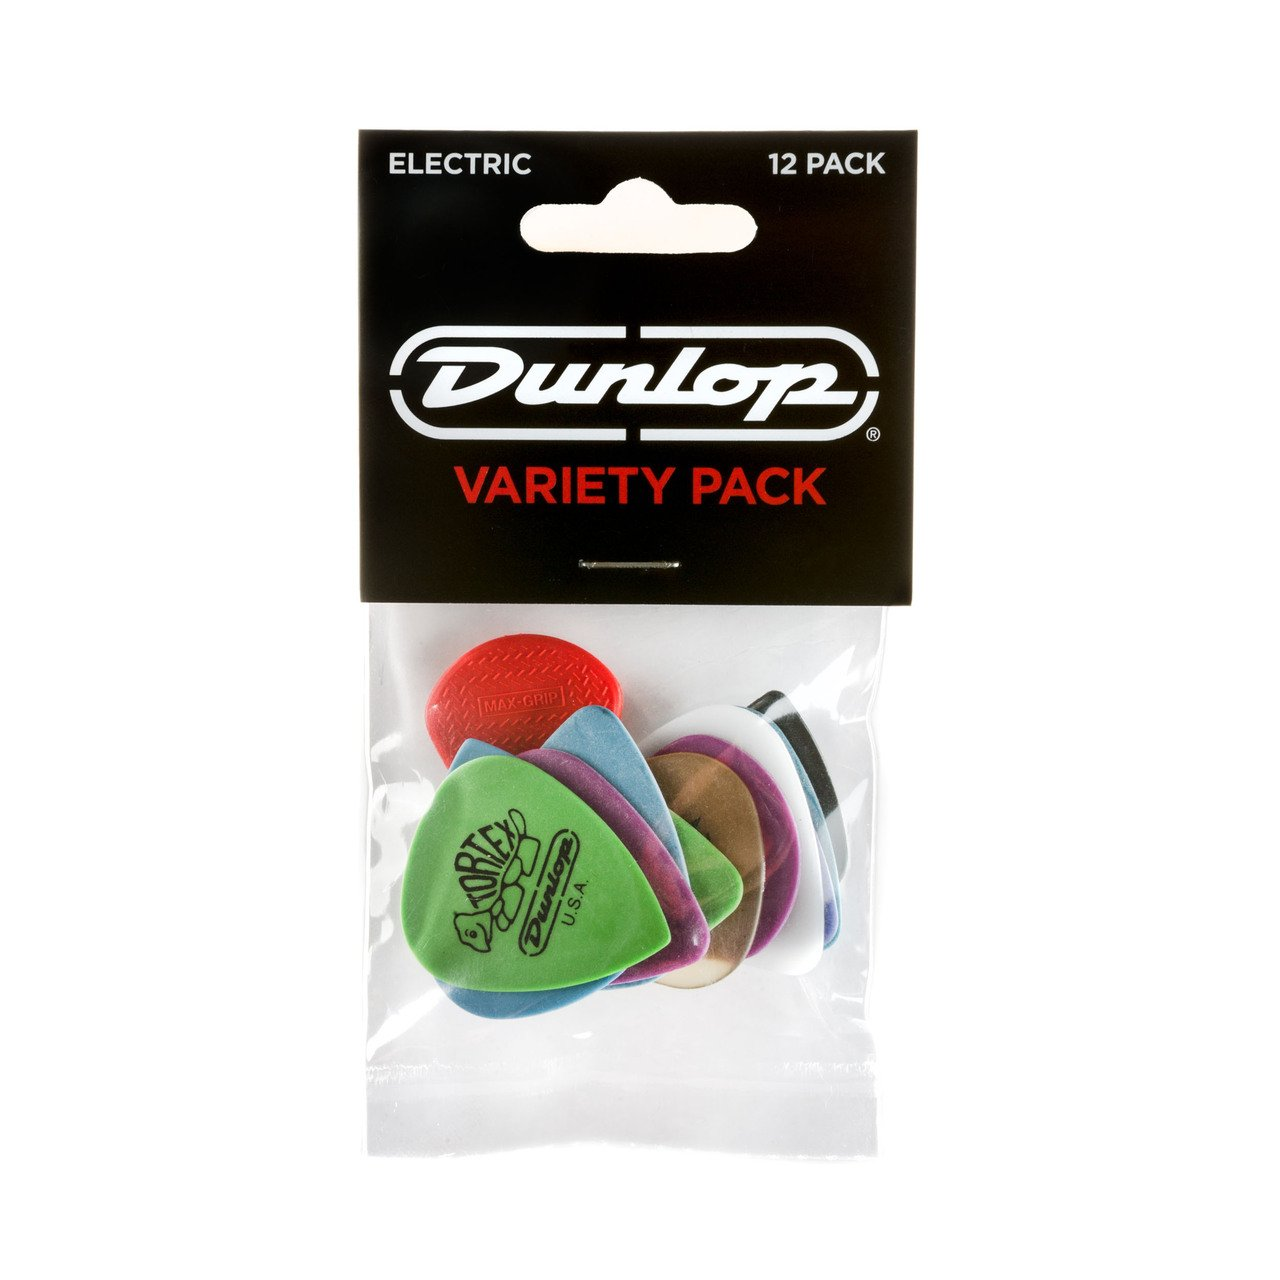 Dunlop Guitar Pick Variety Pack - Electric